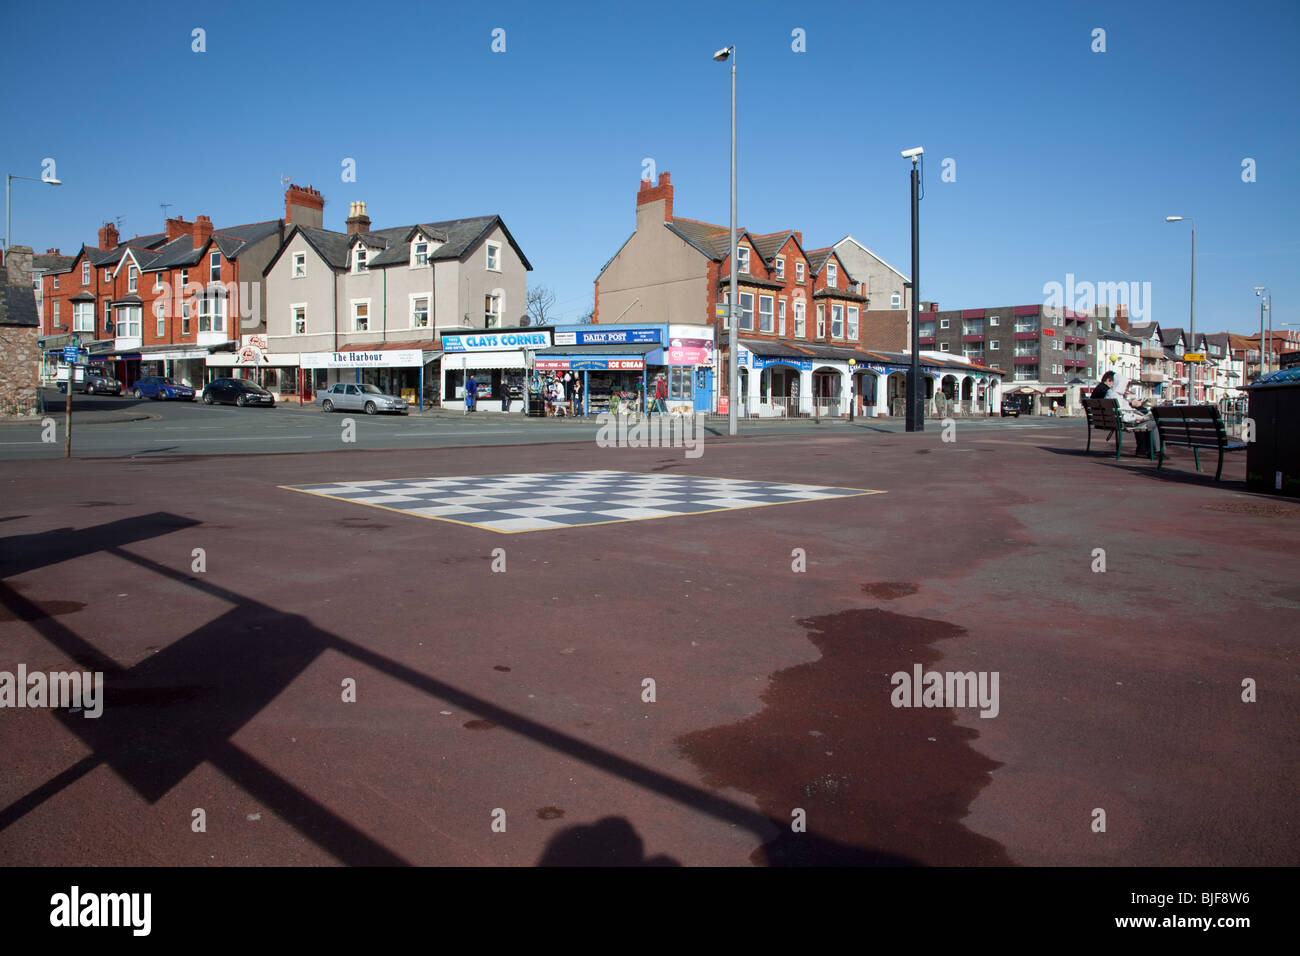 Rhos on Sea, North Wales seafront shops and accommodation viewed from the promenade - Stock Image